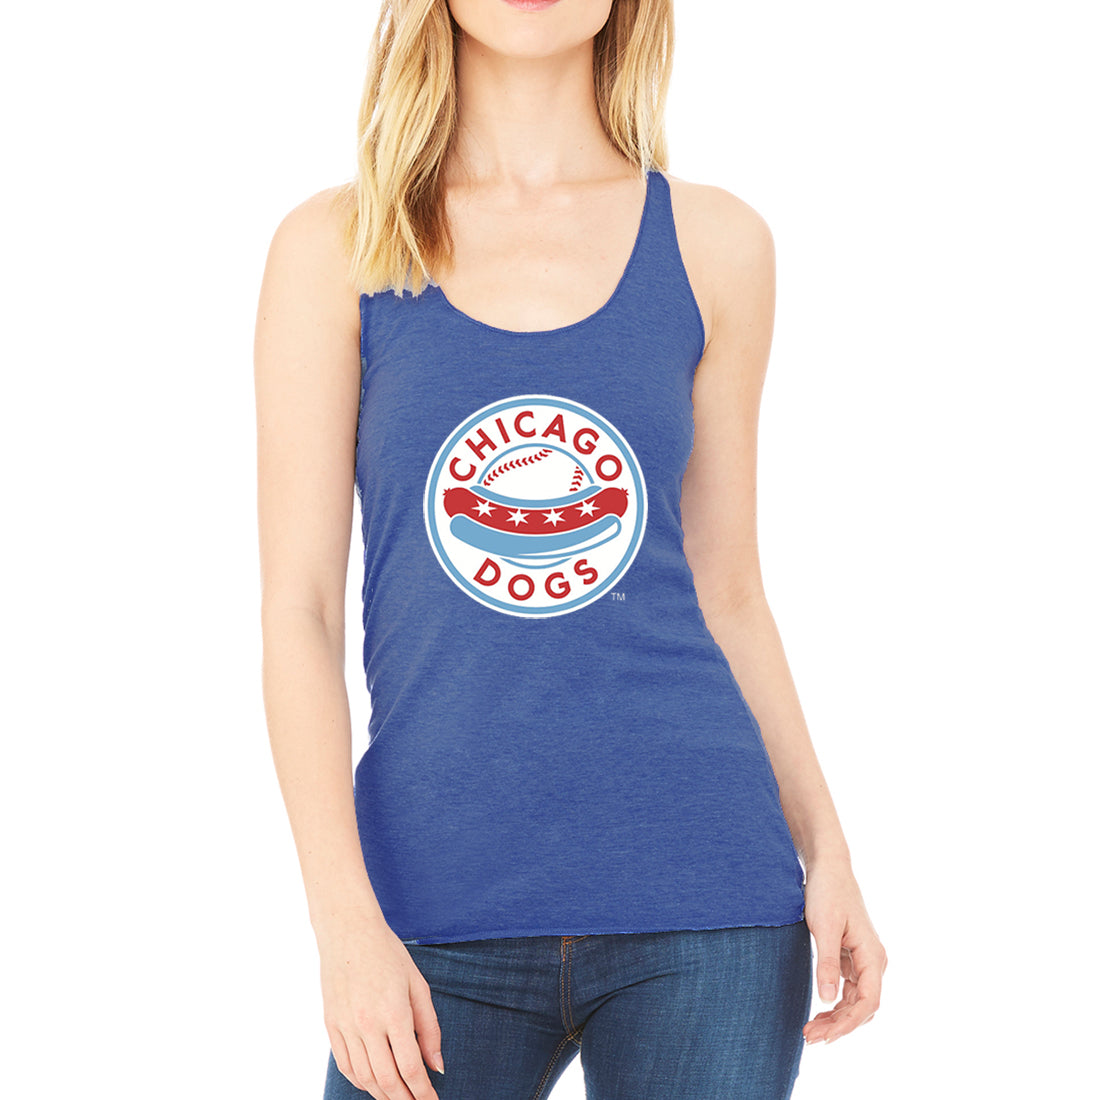 Chicago Dogs Womens Primary Logo Tri-blend Tank - Blue - Chicago Dogs Team Store